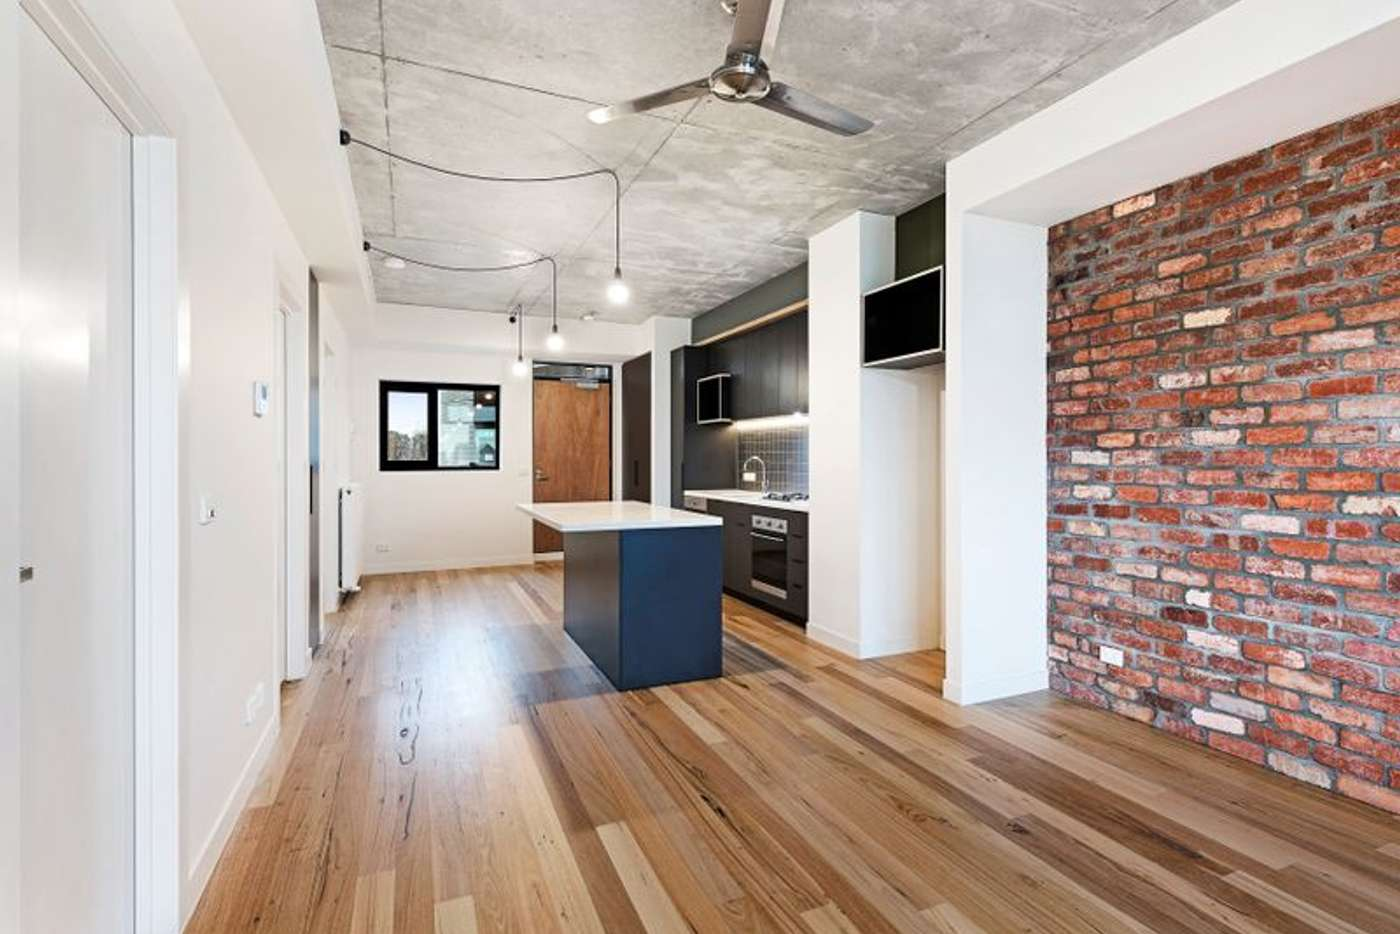 Main view of Homely apartment listing, 302/28 Curzon Street, West Melbourne VIC 3003